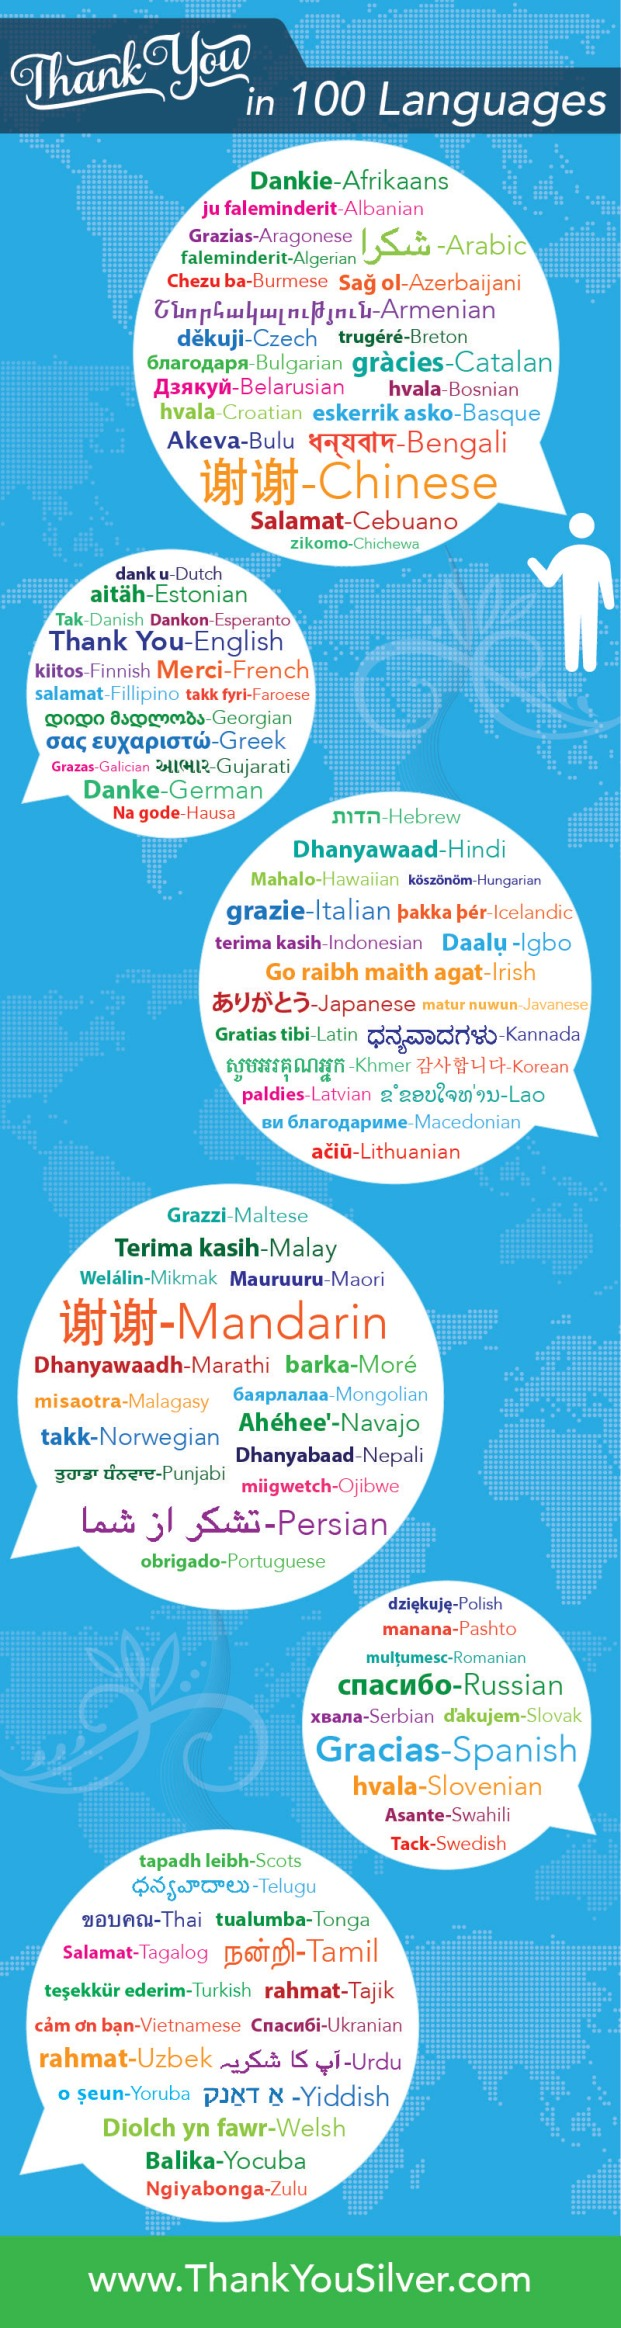 ThankYouInManyDifferentLanguages